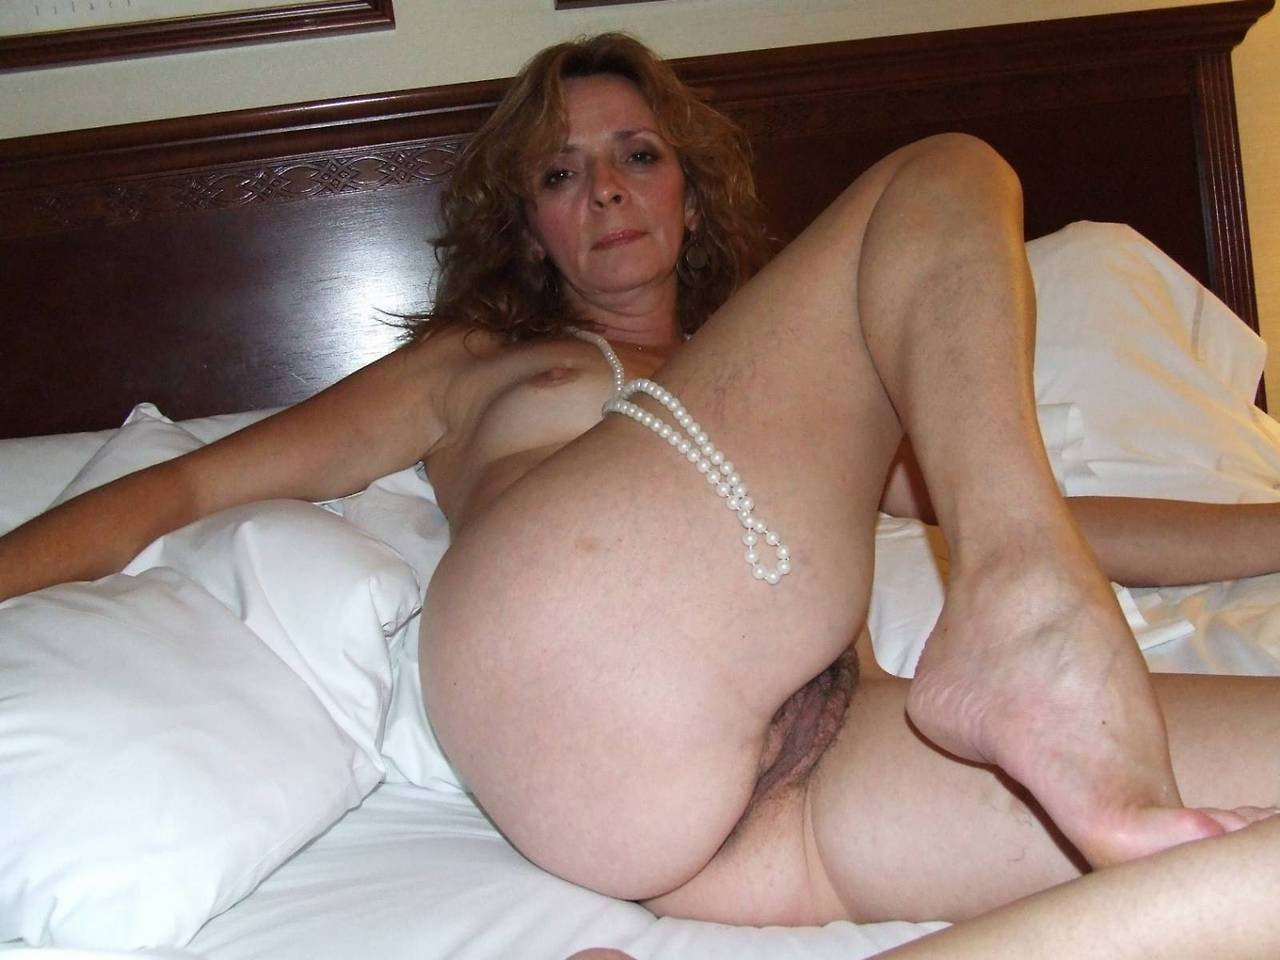 Real sex with old lady homemade